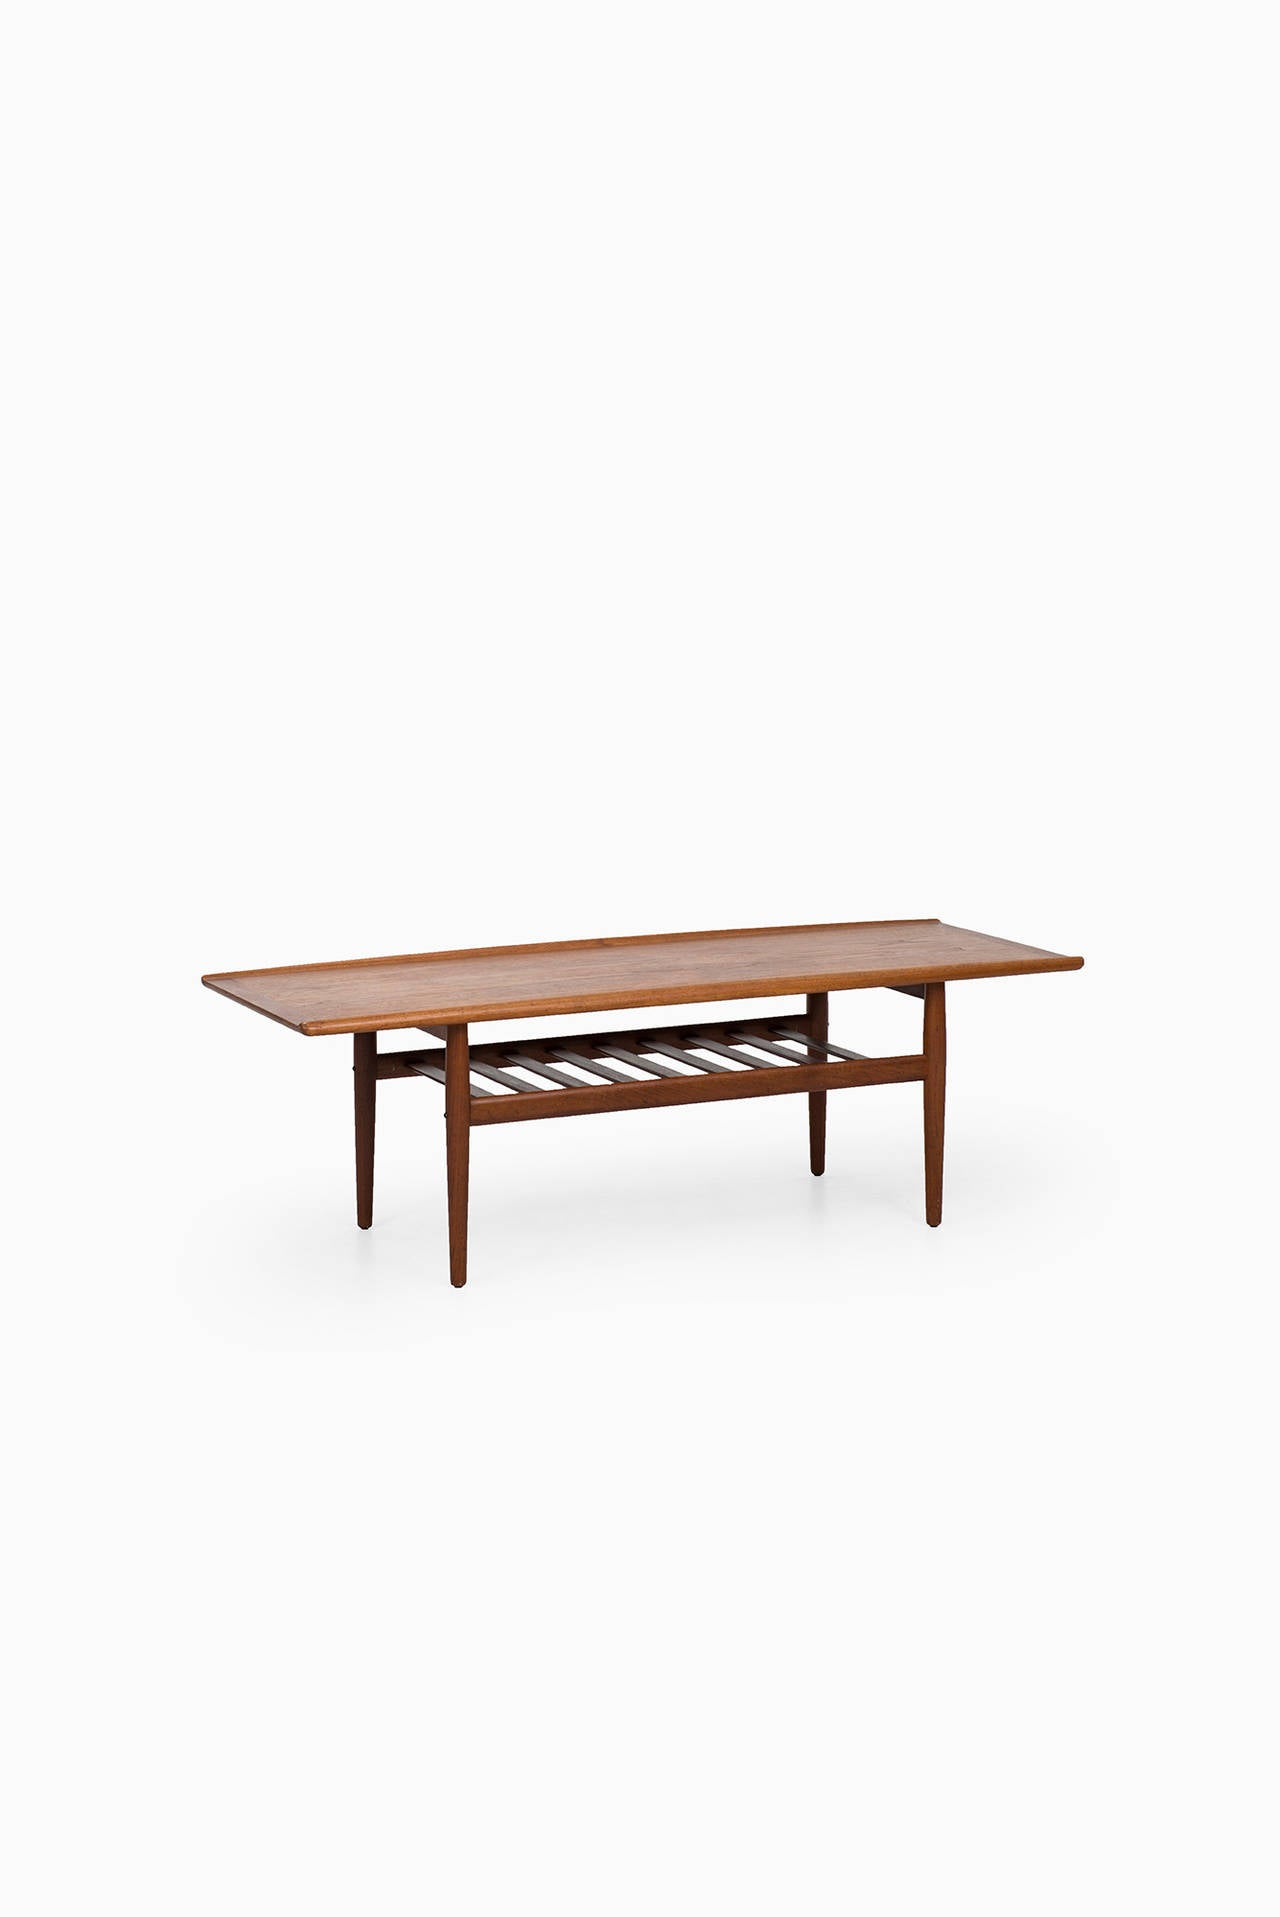 Grete Jalk Coffee Table in Teak by Glostrup Møbelfabrik in Denmark For Sale 1